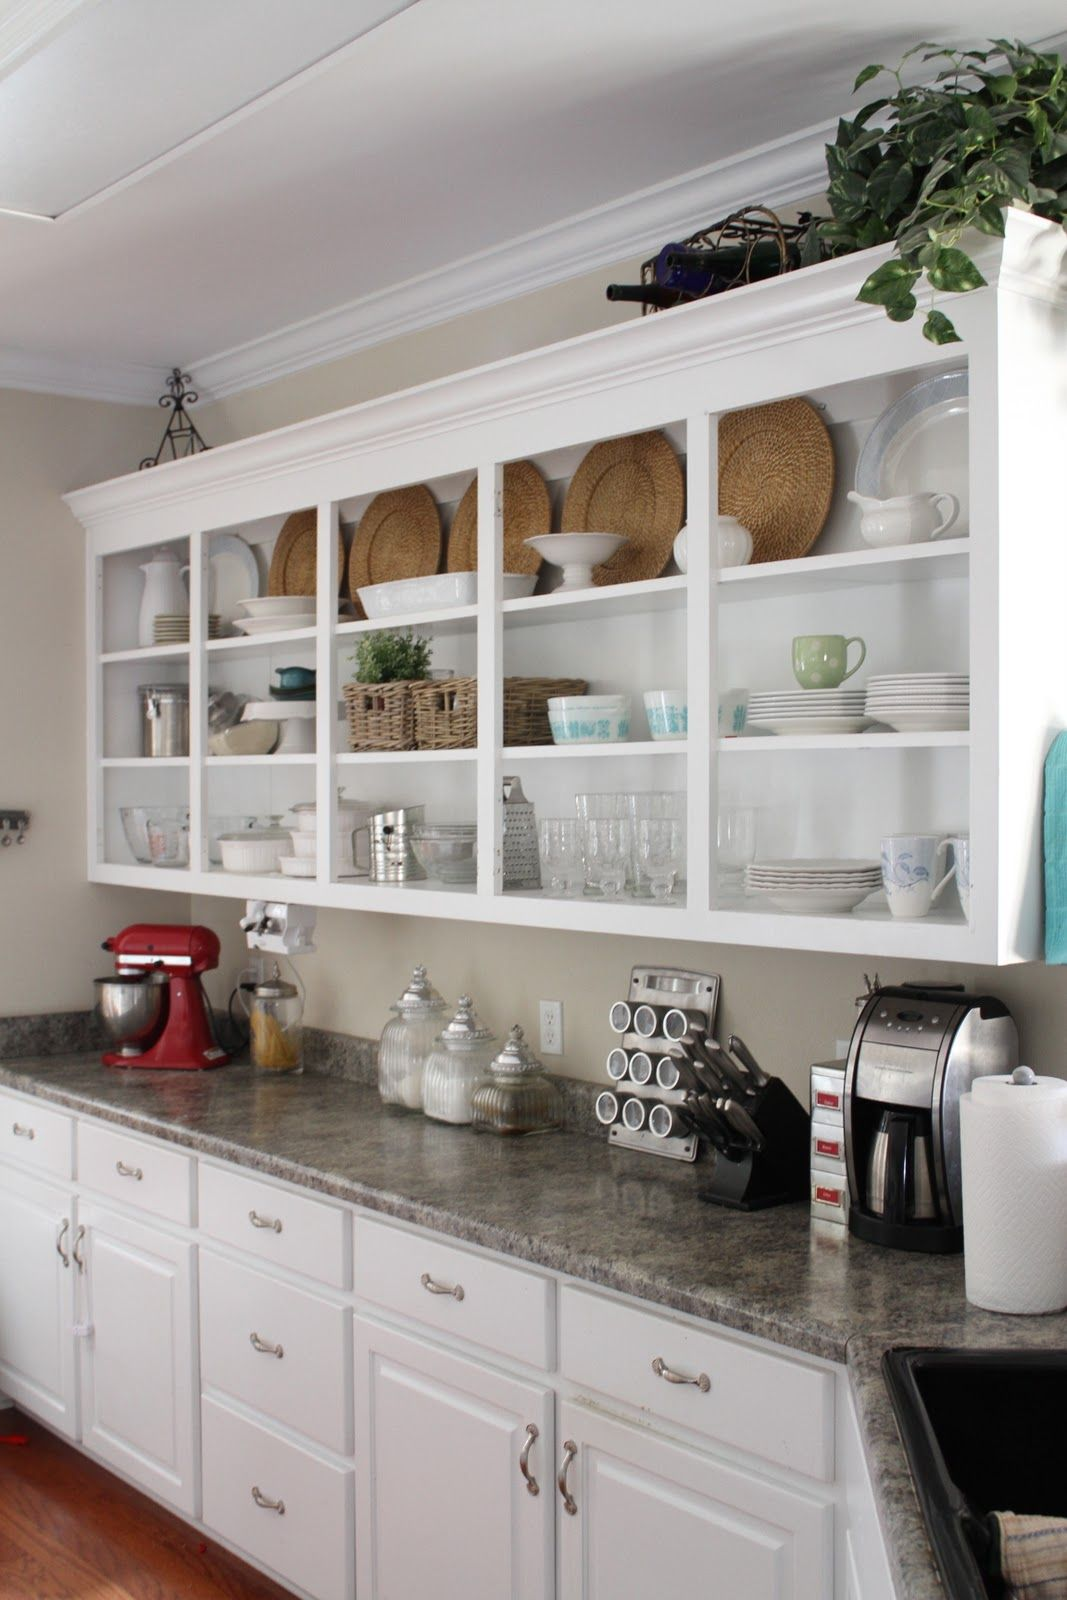 White Kitchen Shelf Organizer